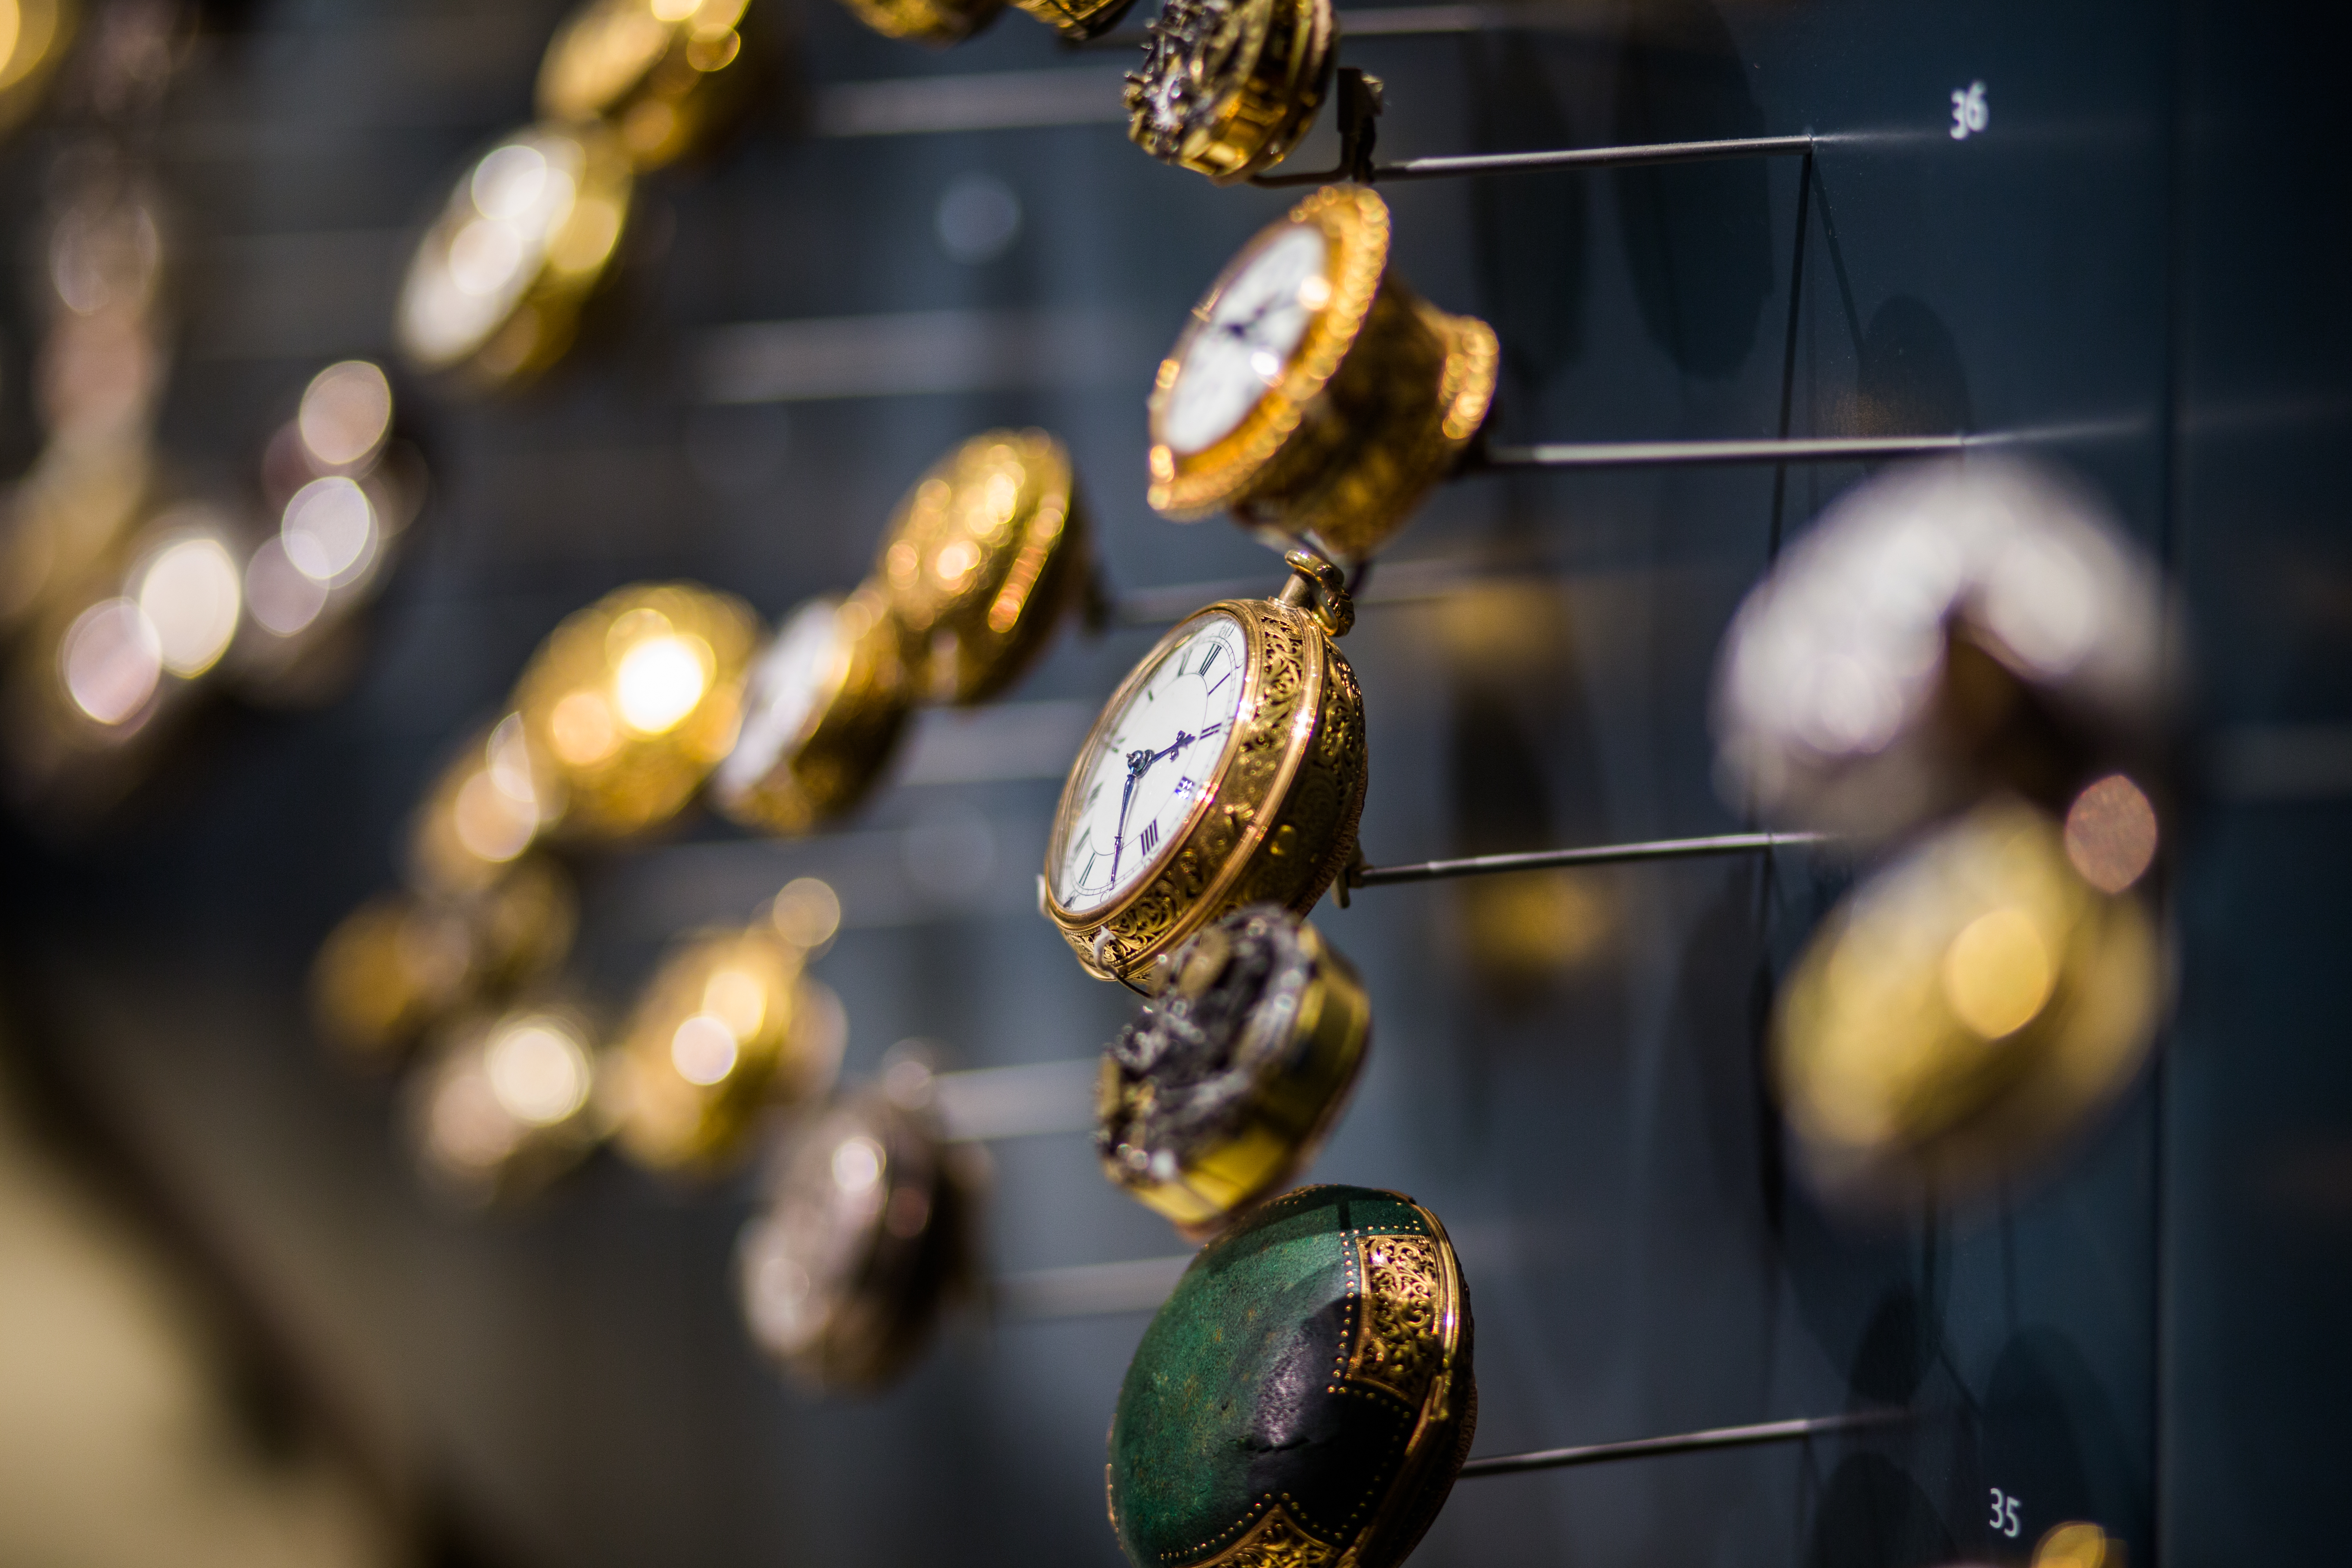 Gold-colored Nalog Watches on Selective Focus Photo